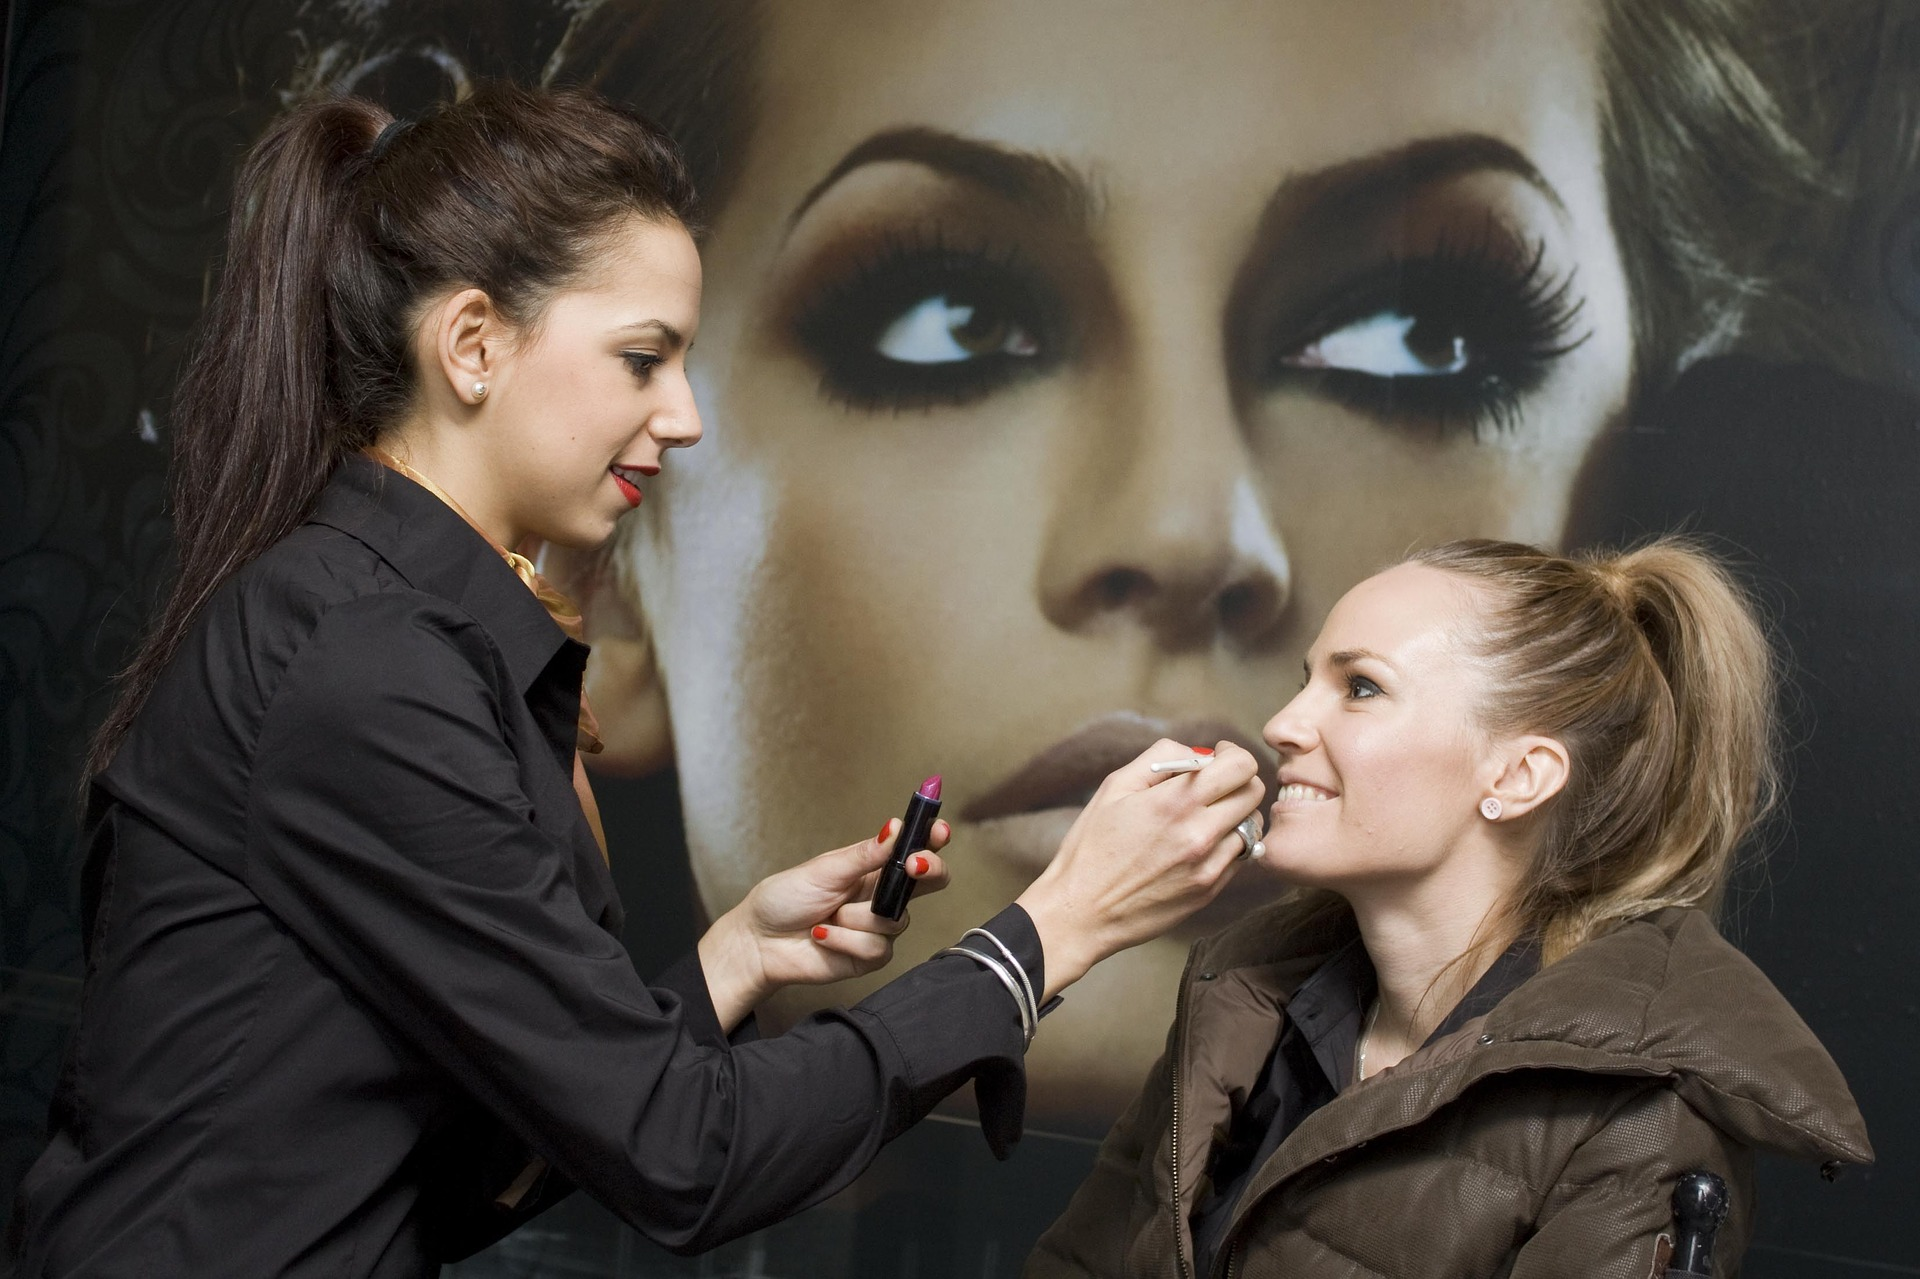 Top 5 Makeup Artist Schools In Usa